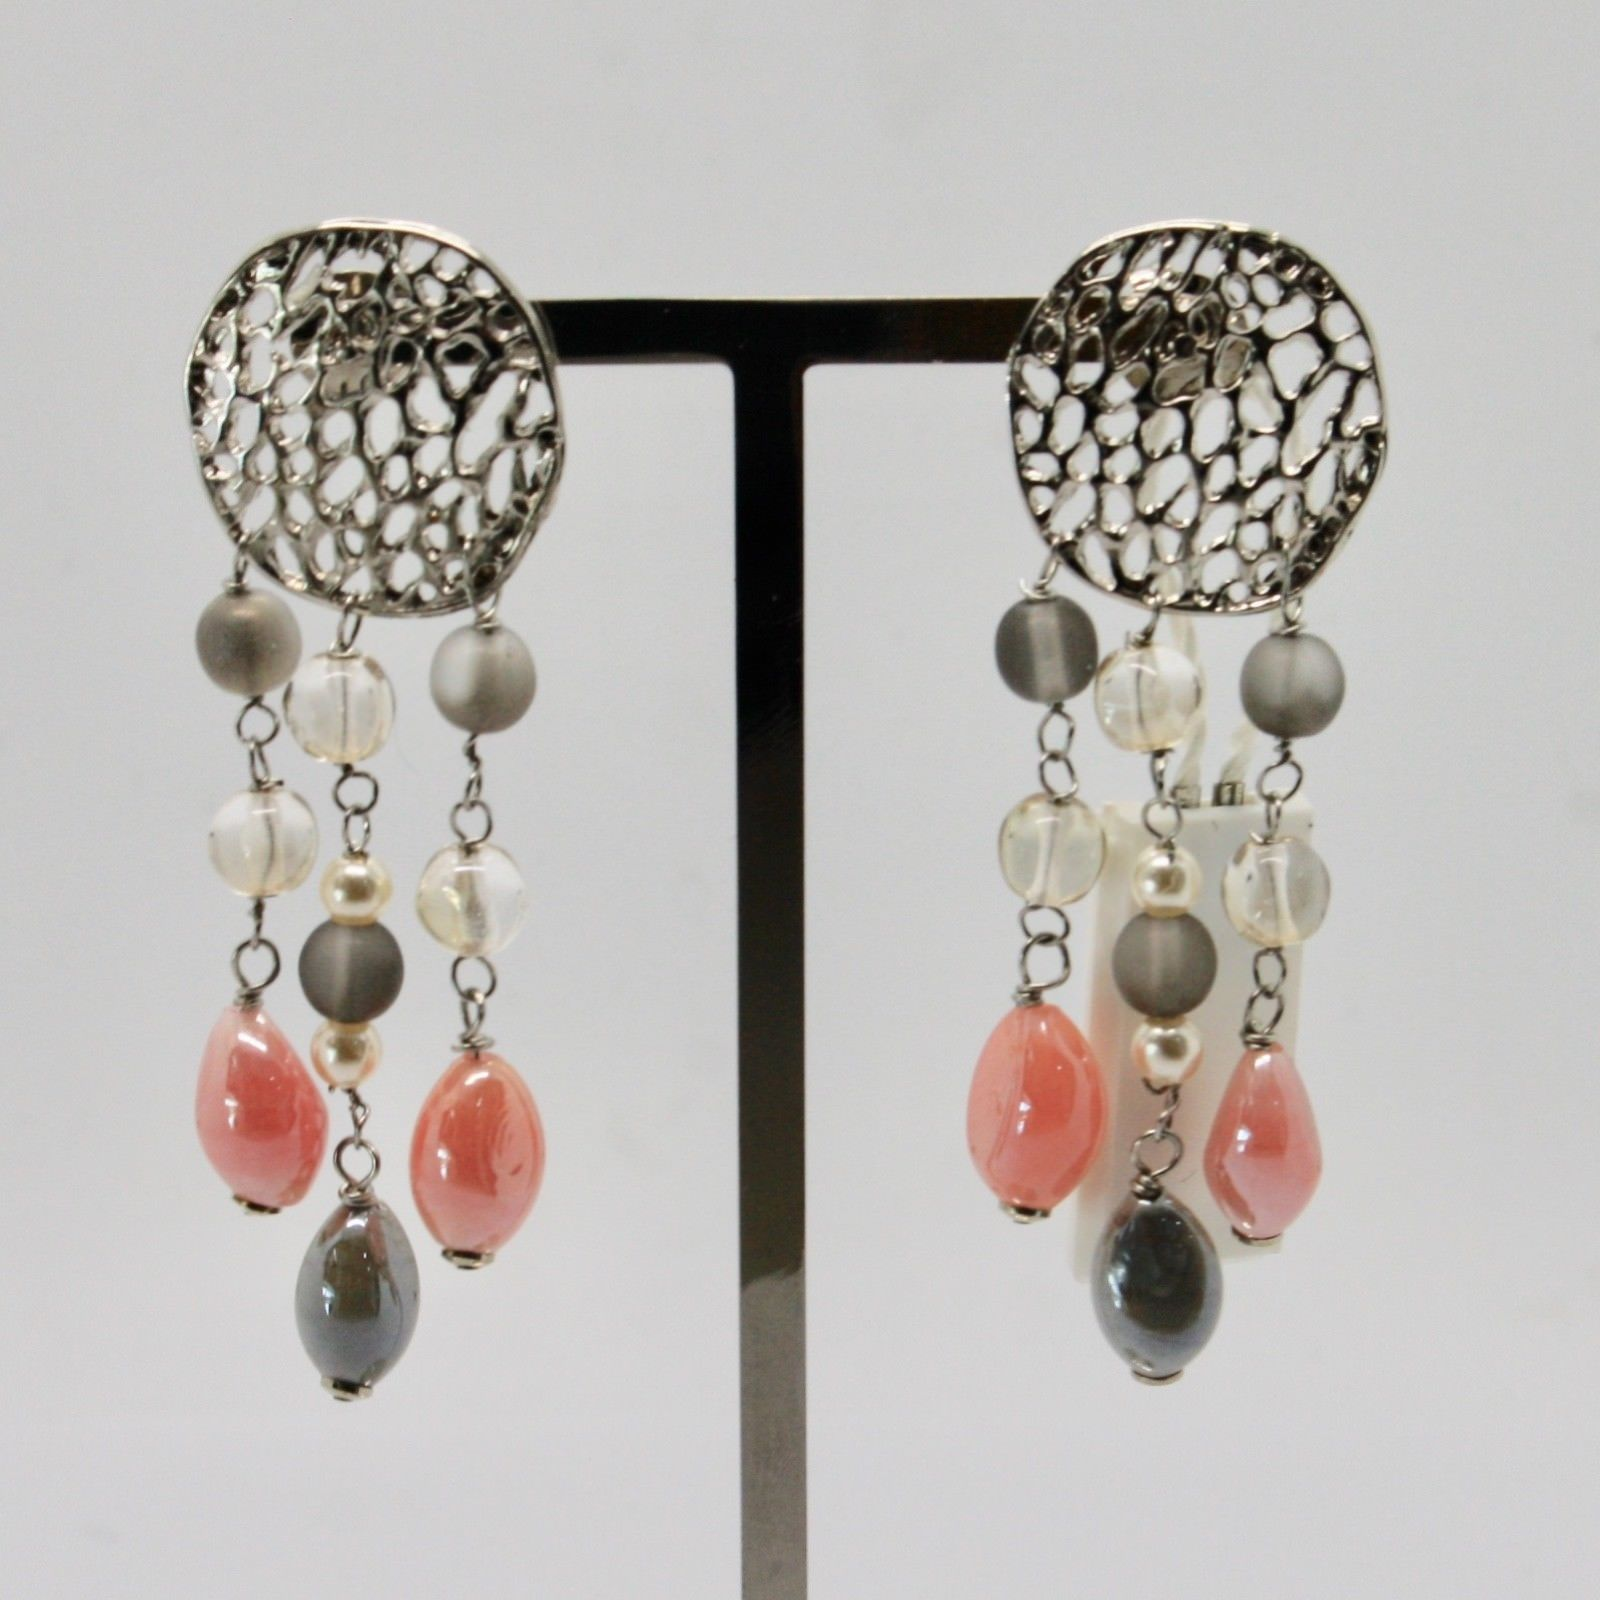 EARRINGS ANTICA MURRINA VENEZIA WITH MURANO GLASS PINK GRAY BEIGE OR571A03